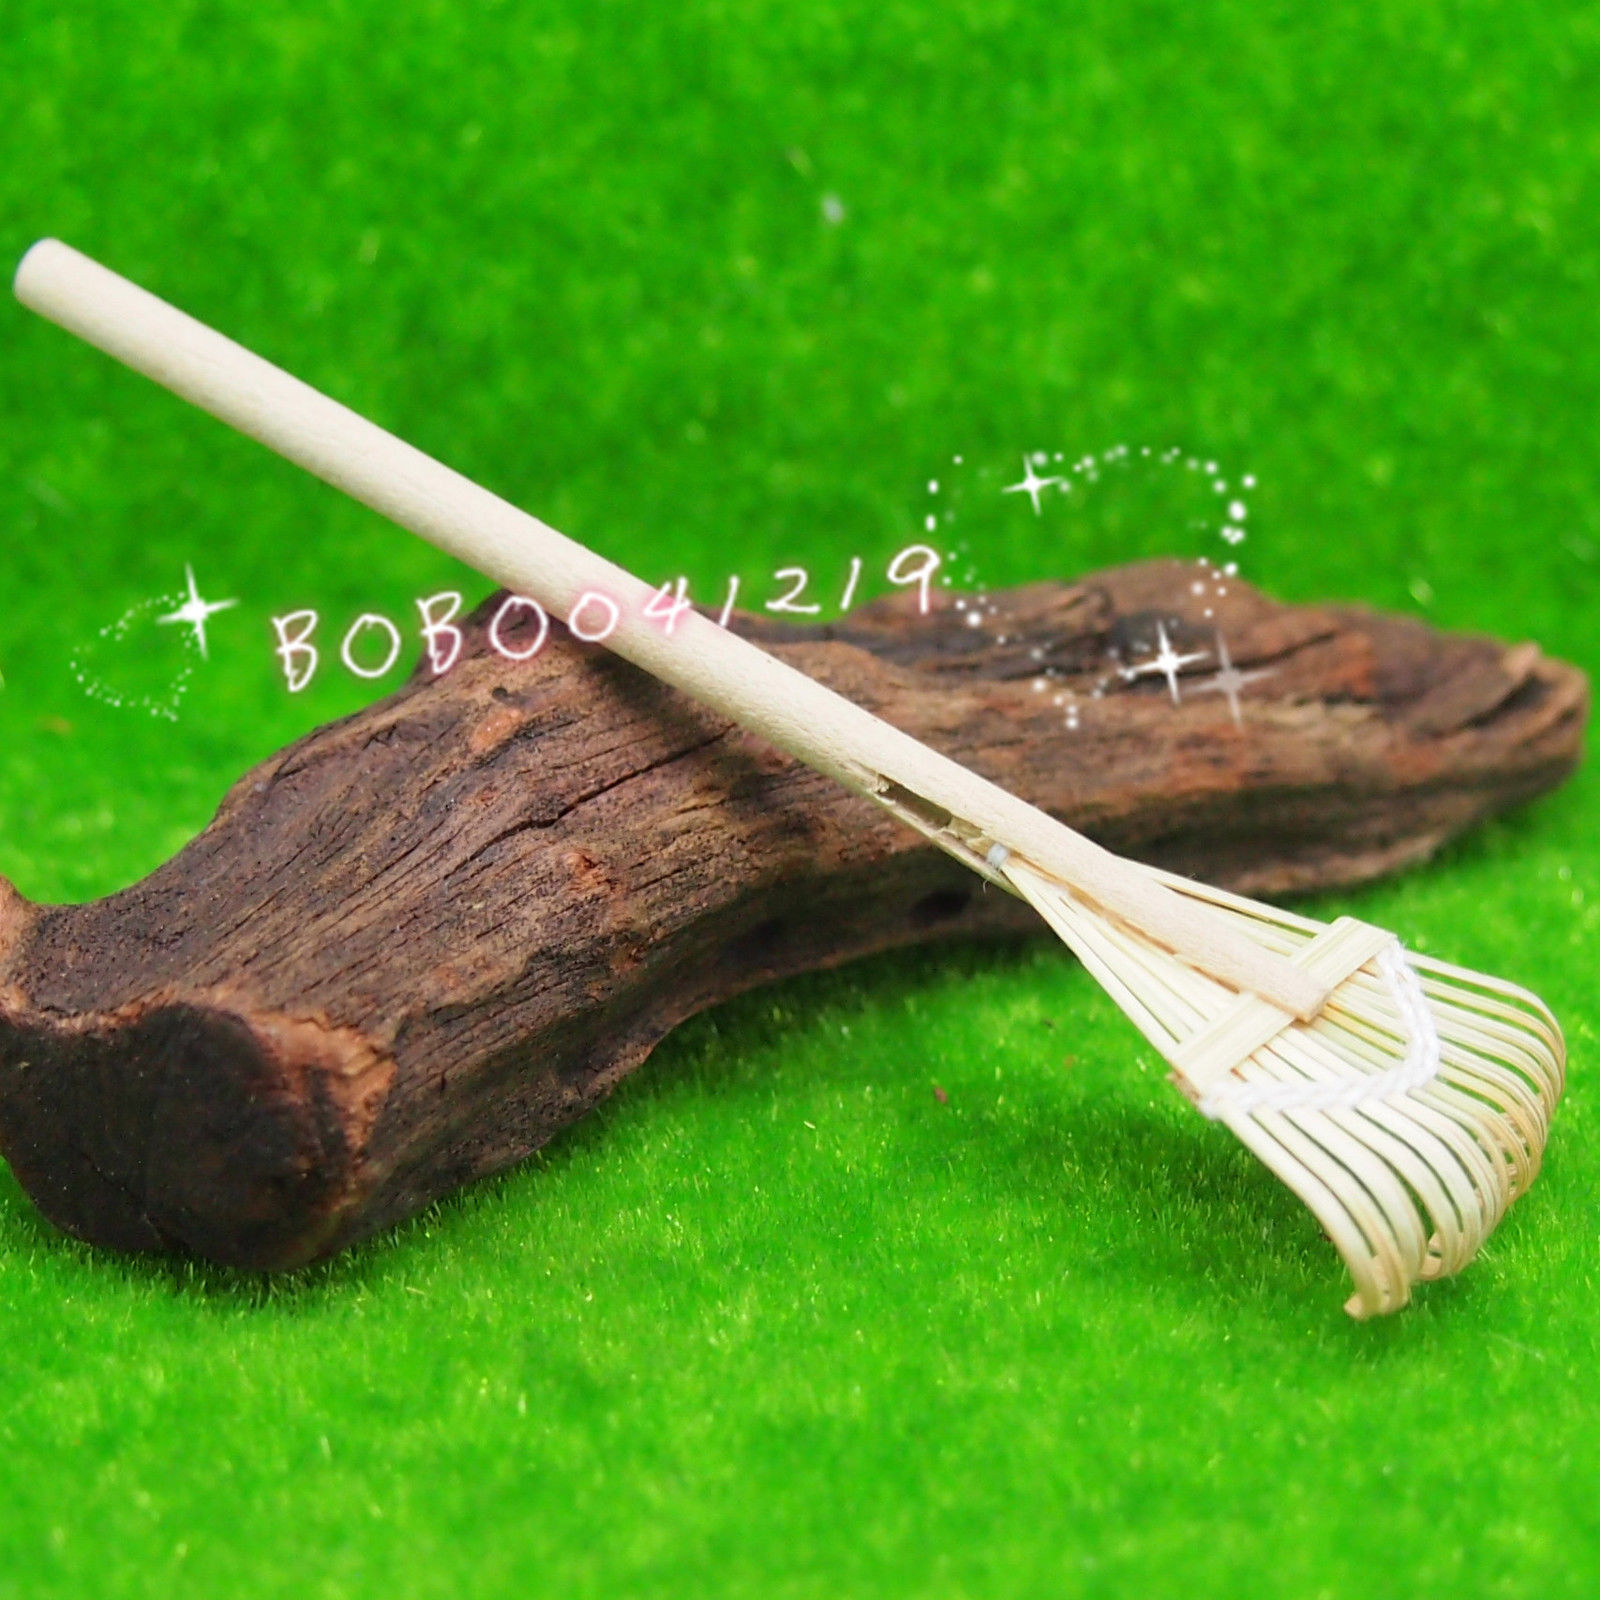 Dollhouse Miniature 1:12 Toy Garden Leaves Clearing Bamboo Broom L9.7cm SPO08(China (Mainland))